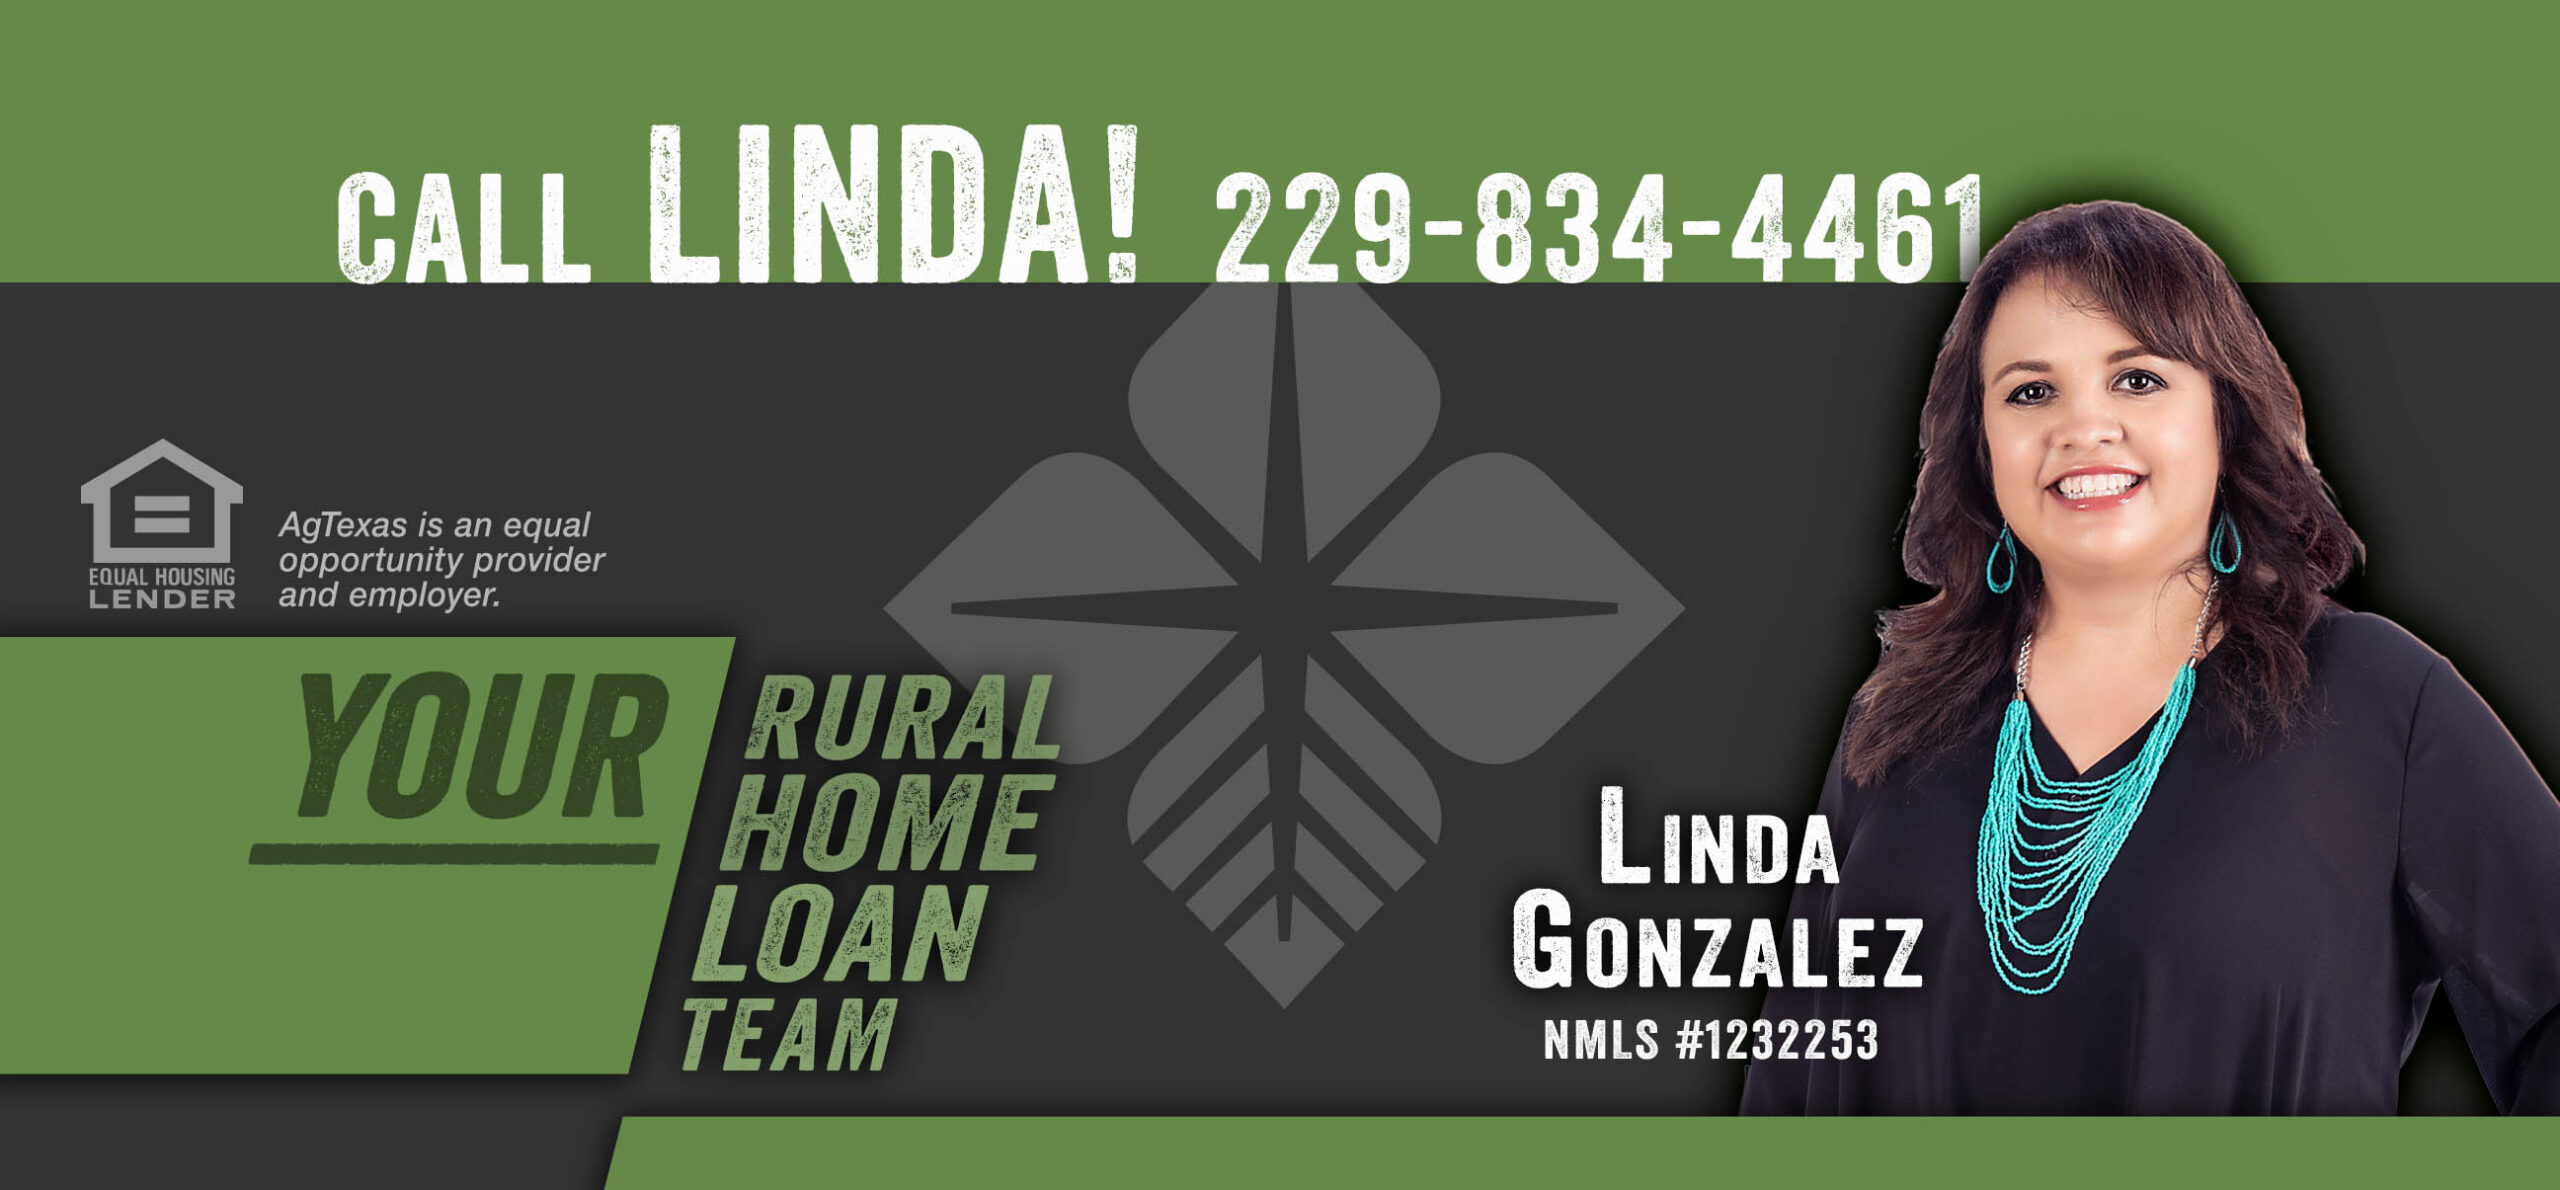 Banner saying to call Linda - picture of Linda wearing black blouse and turquoise jewelry